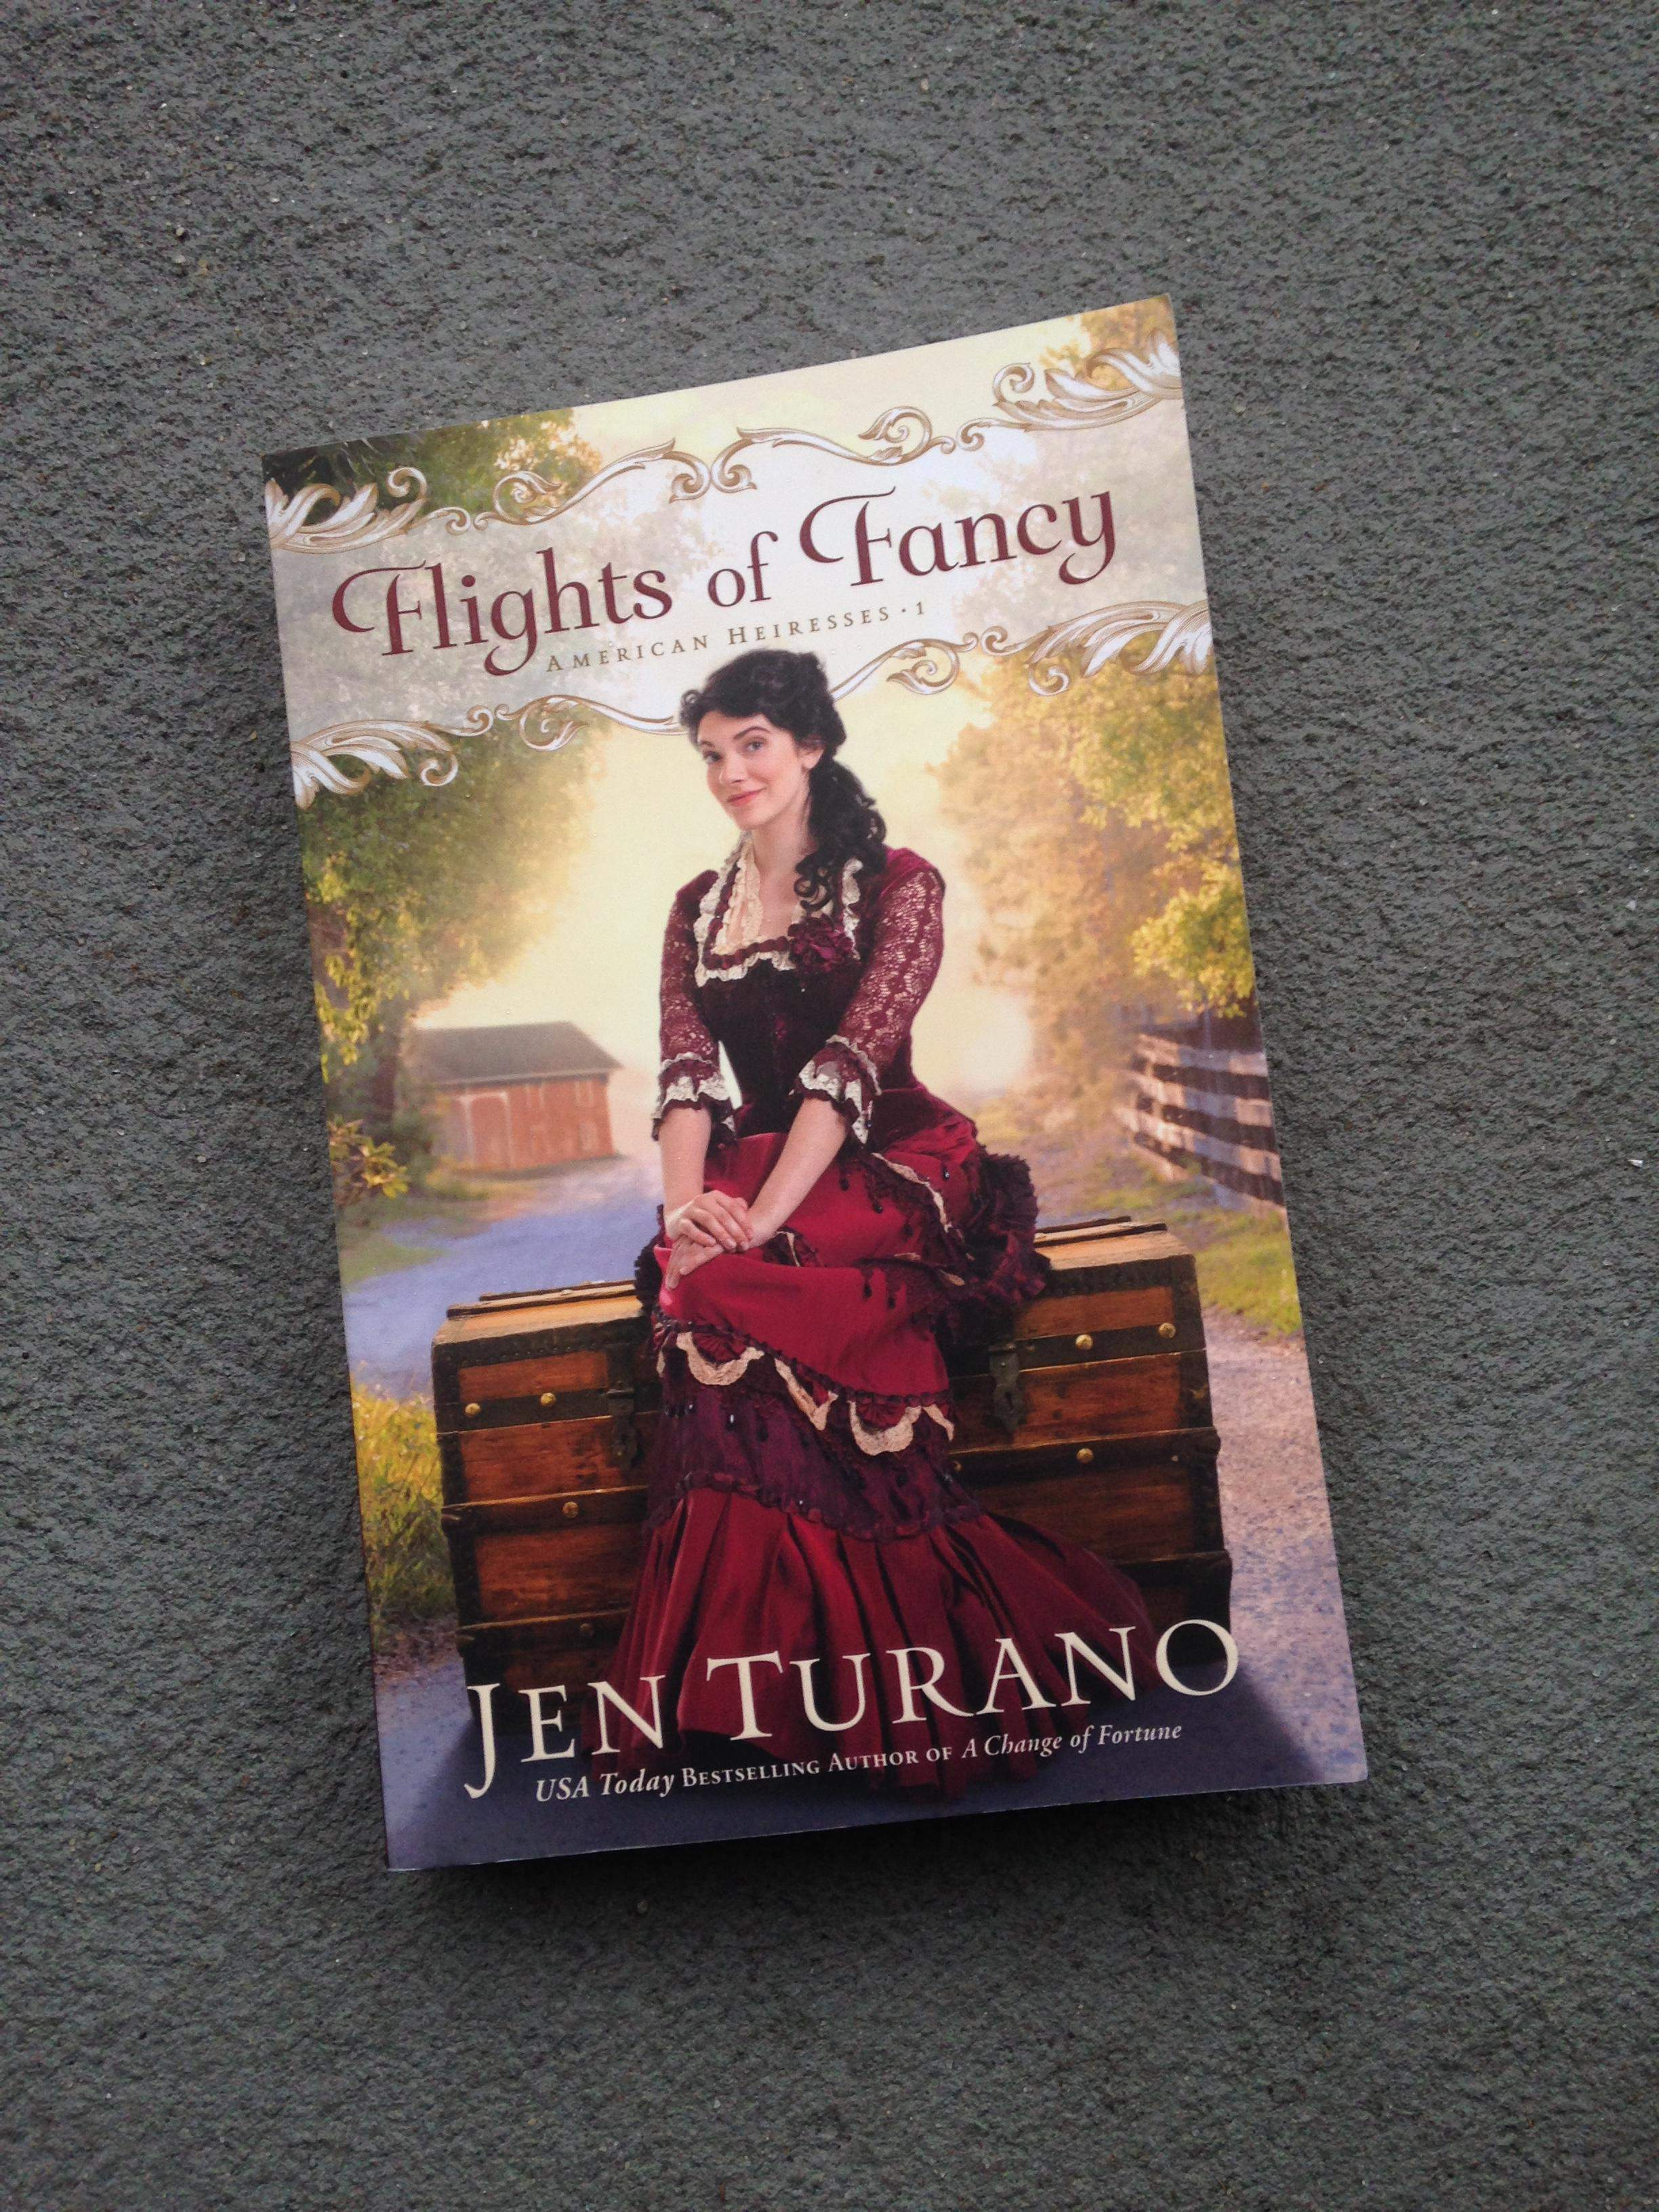 My Bookshelf: Flights of Fancy by Jen Turano